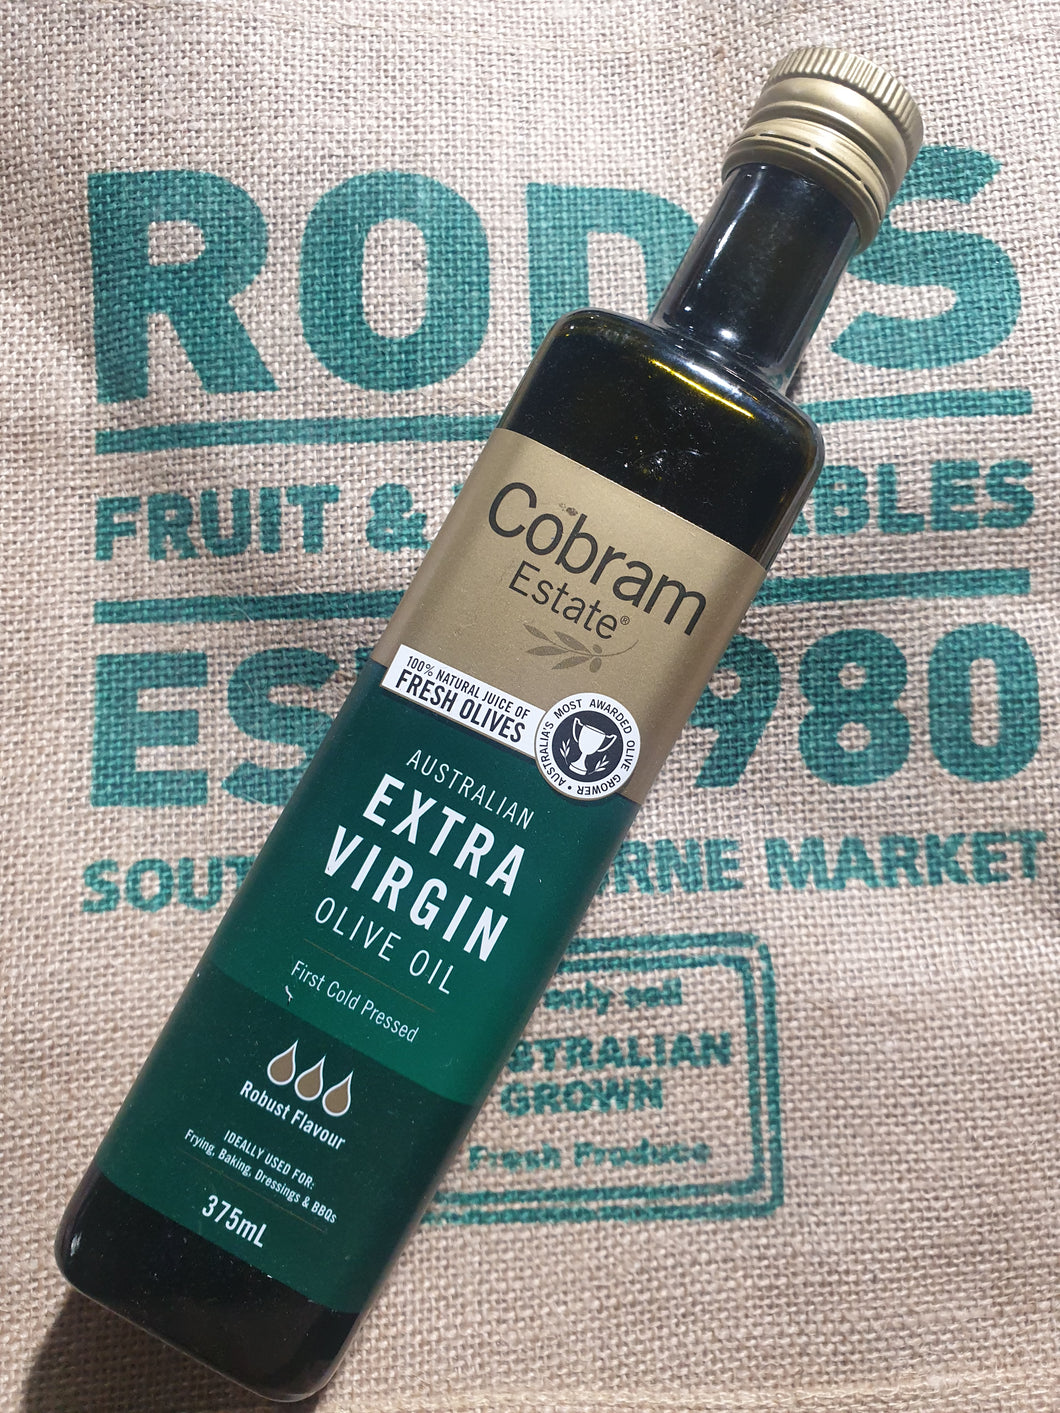 Cobram estate extra virgin oil Robust